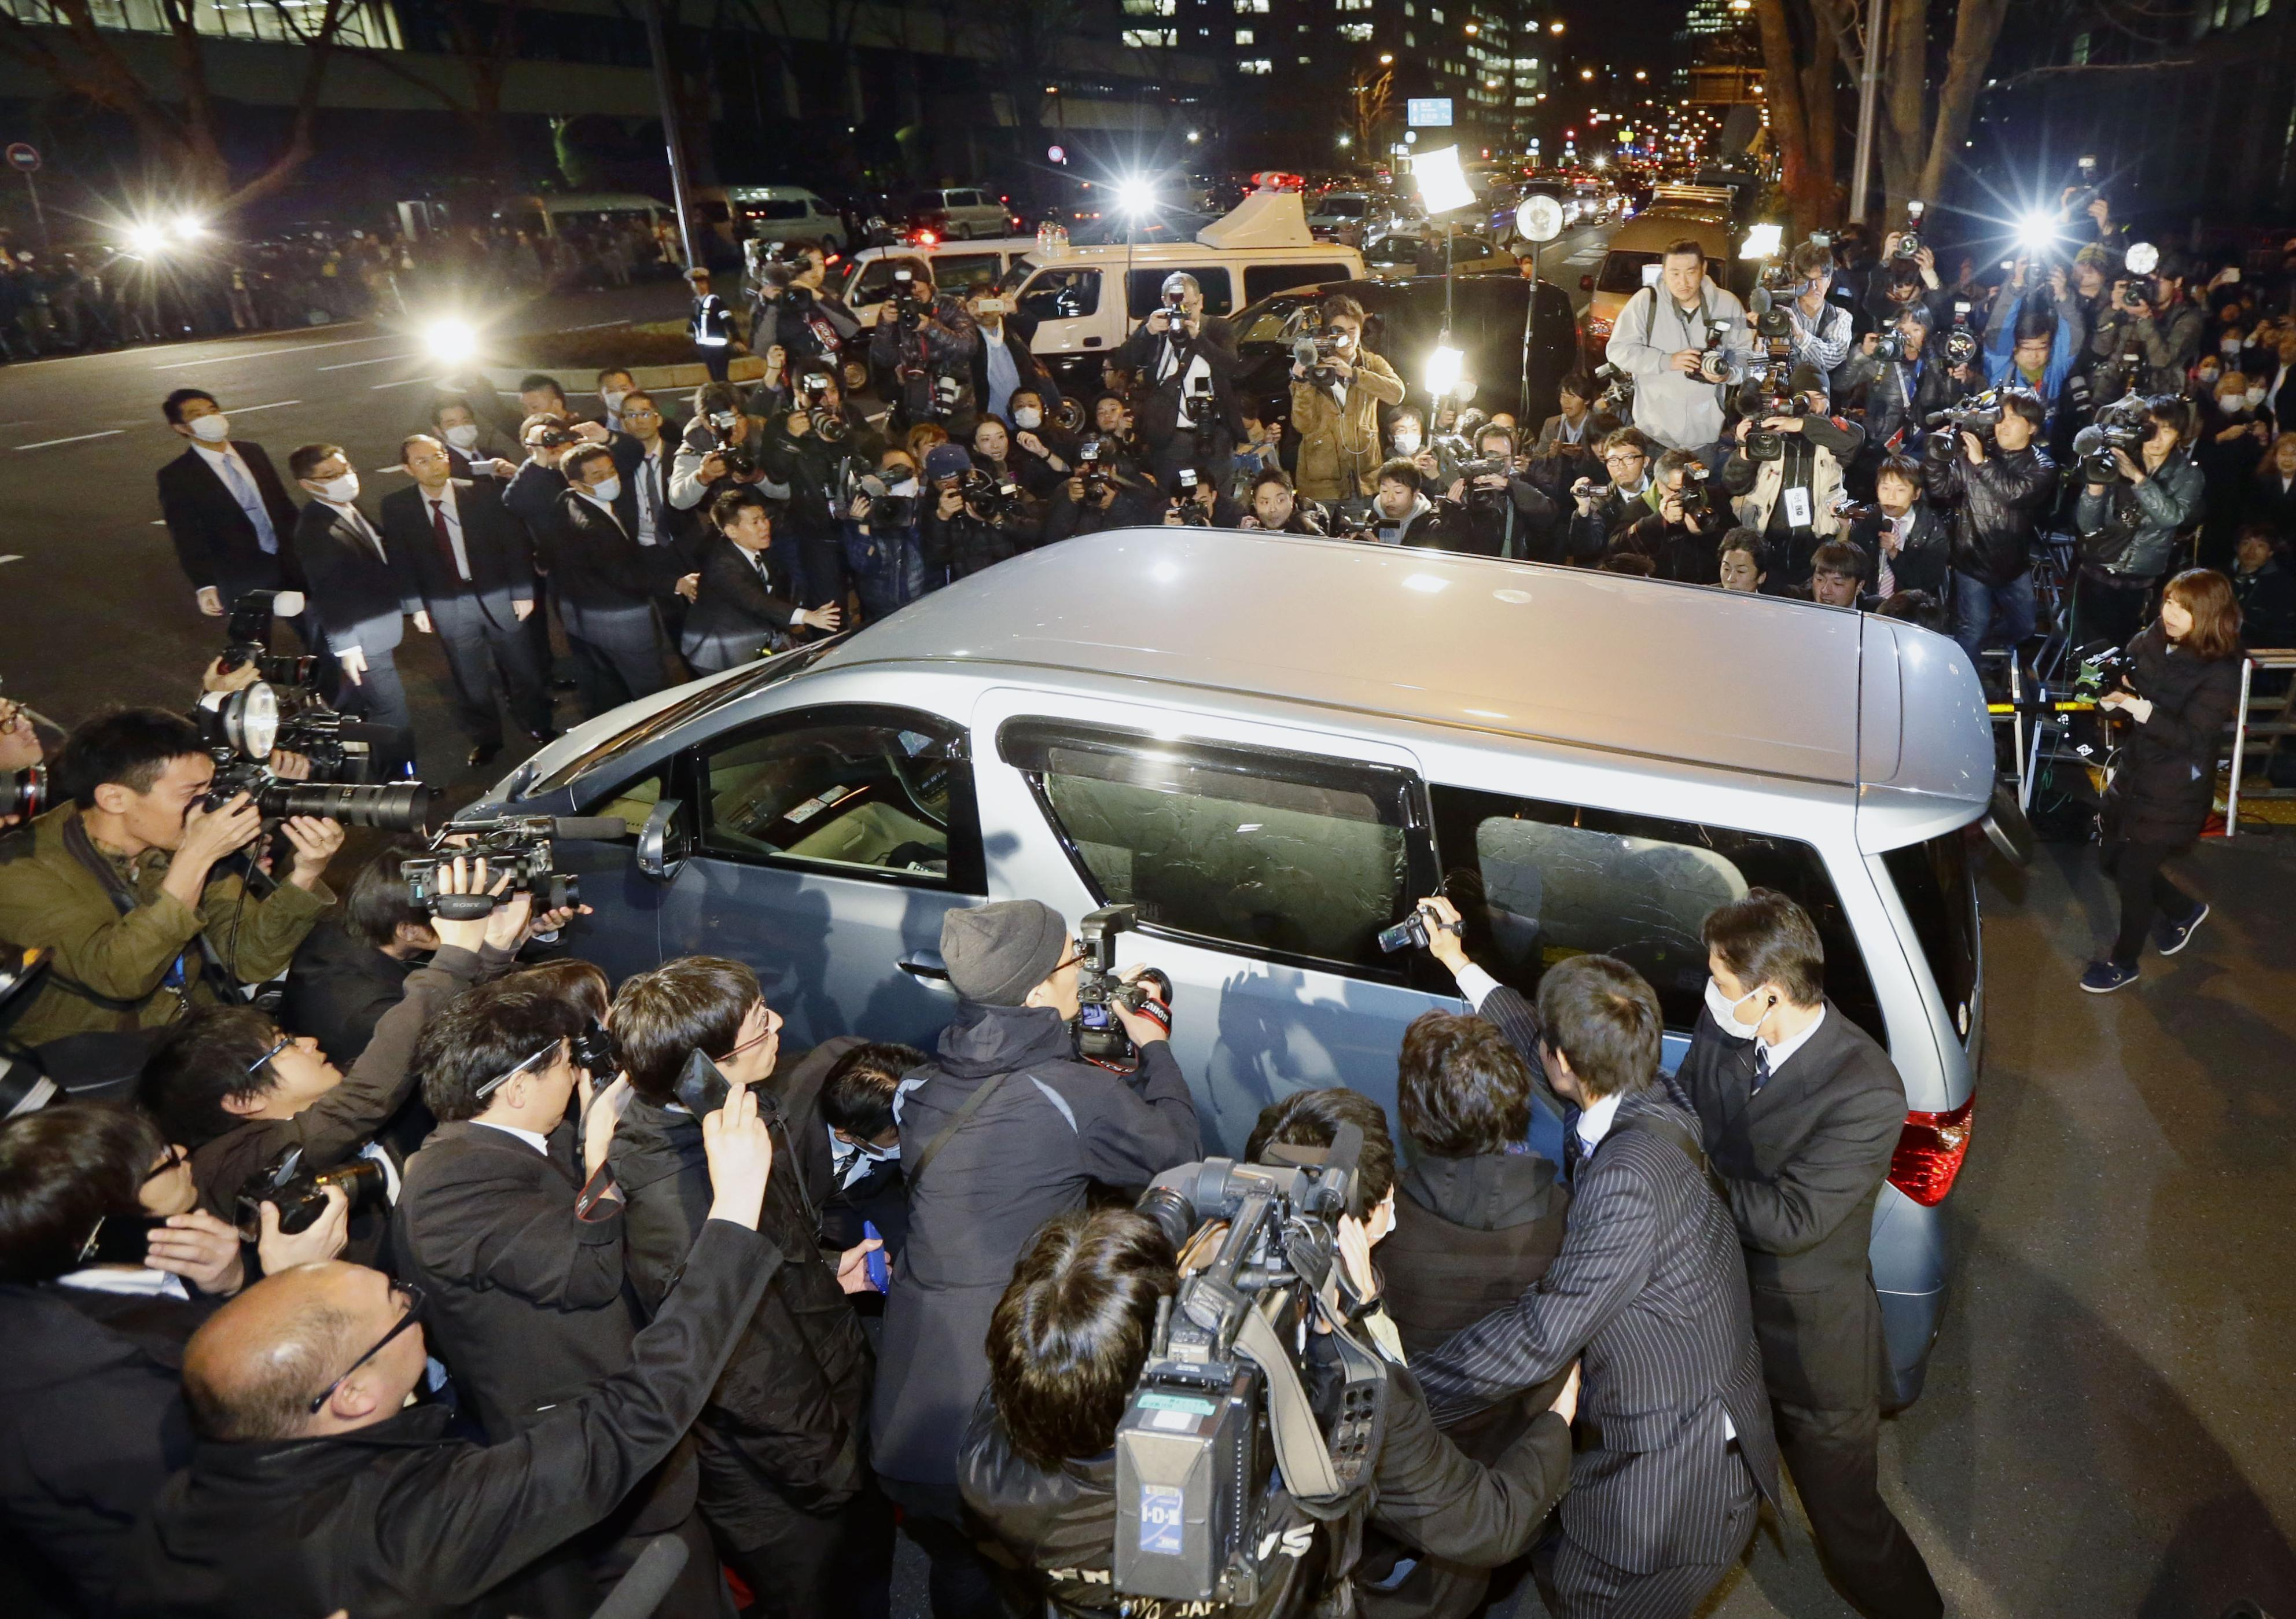 Media scrum: A vehicle carrying Kazuhiro Kiyohara, a former pro baseball player who was indicted for alleged drug possession and use, leaves the Metropolitan Police Department in Tokyo on March 17. | KYODO